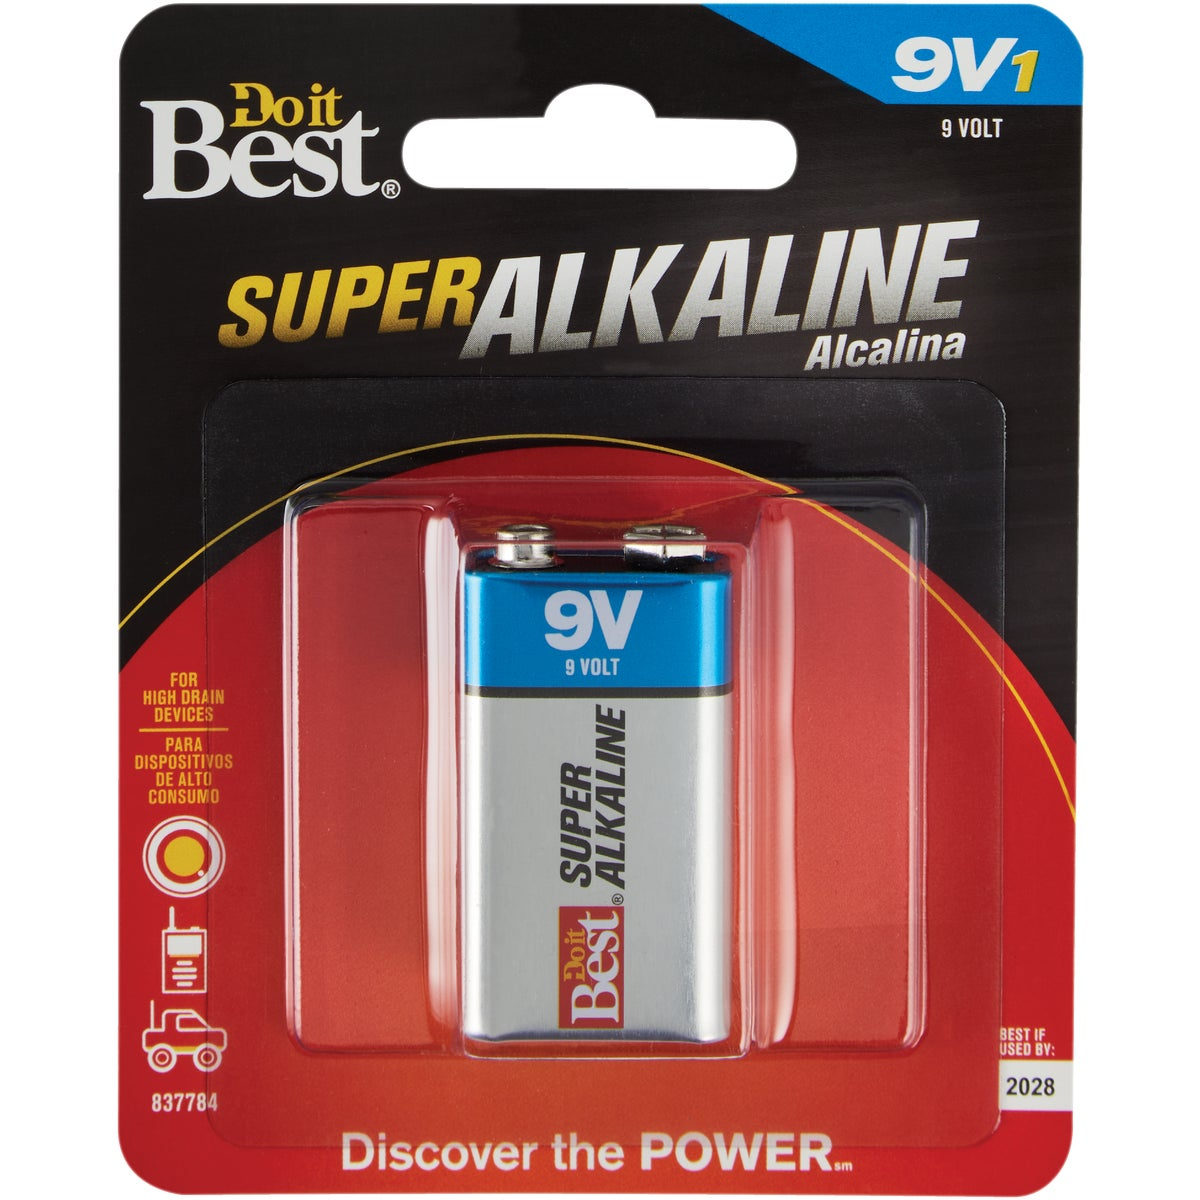 1PK DIB 9V BATTERY - DIBA1604-1 by Ray O Vac